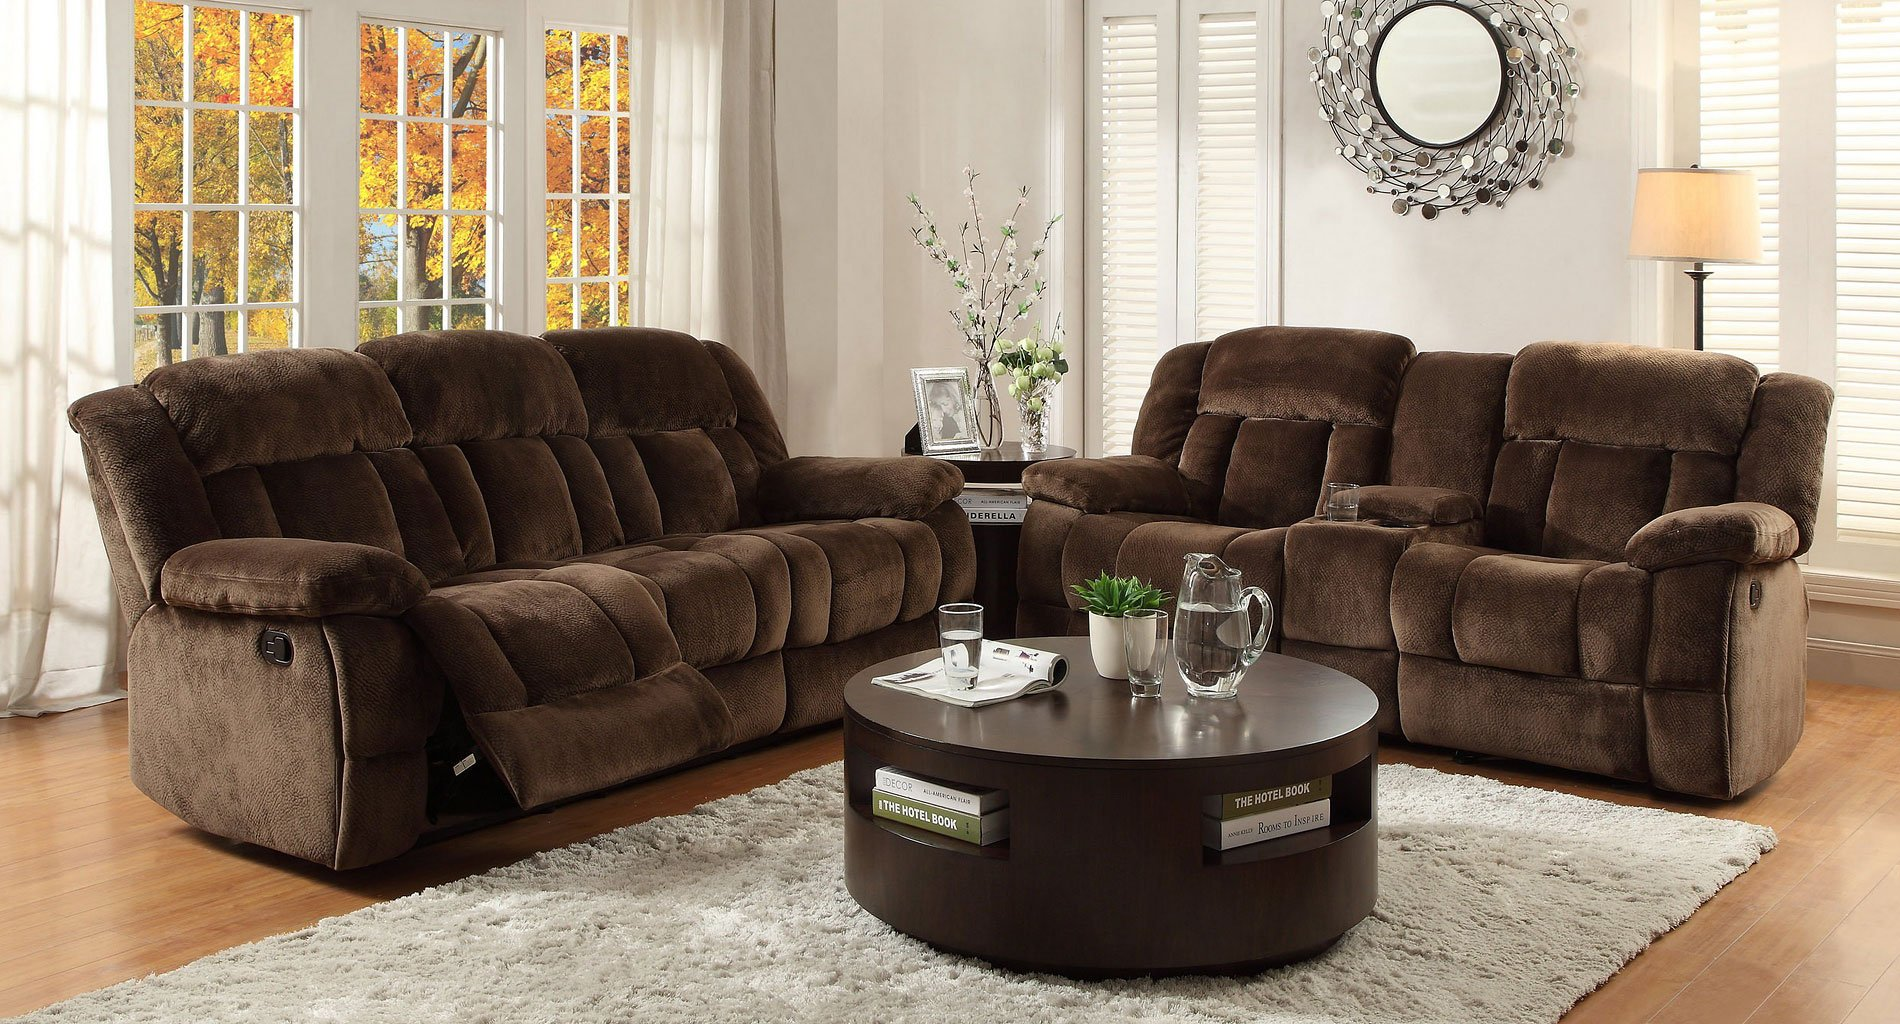 Laurelton Reclining Living Room Set (Chocolate)